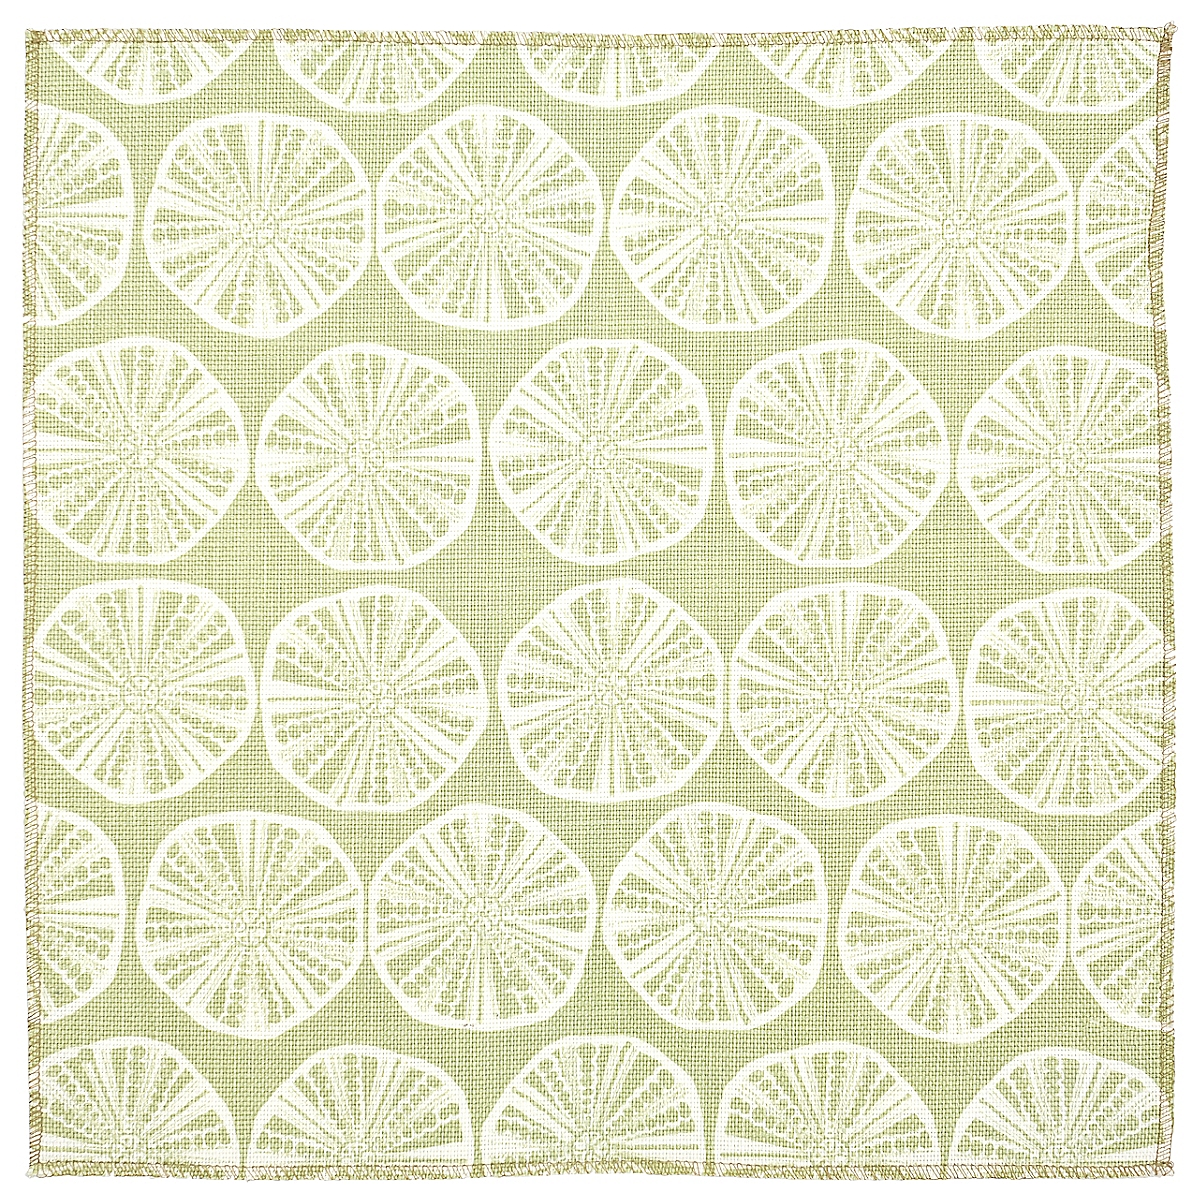 Sea Biscuit: Sprout (fabric yardage)